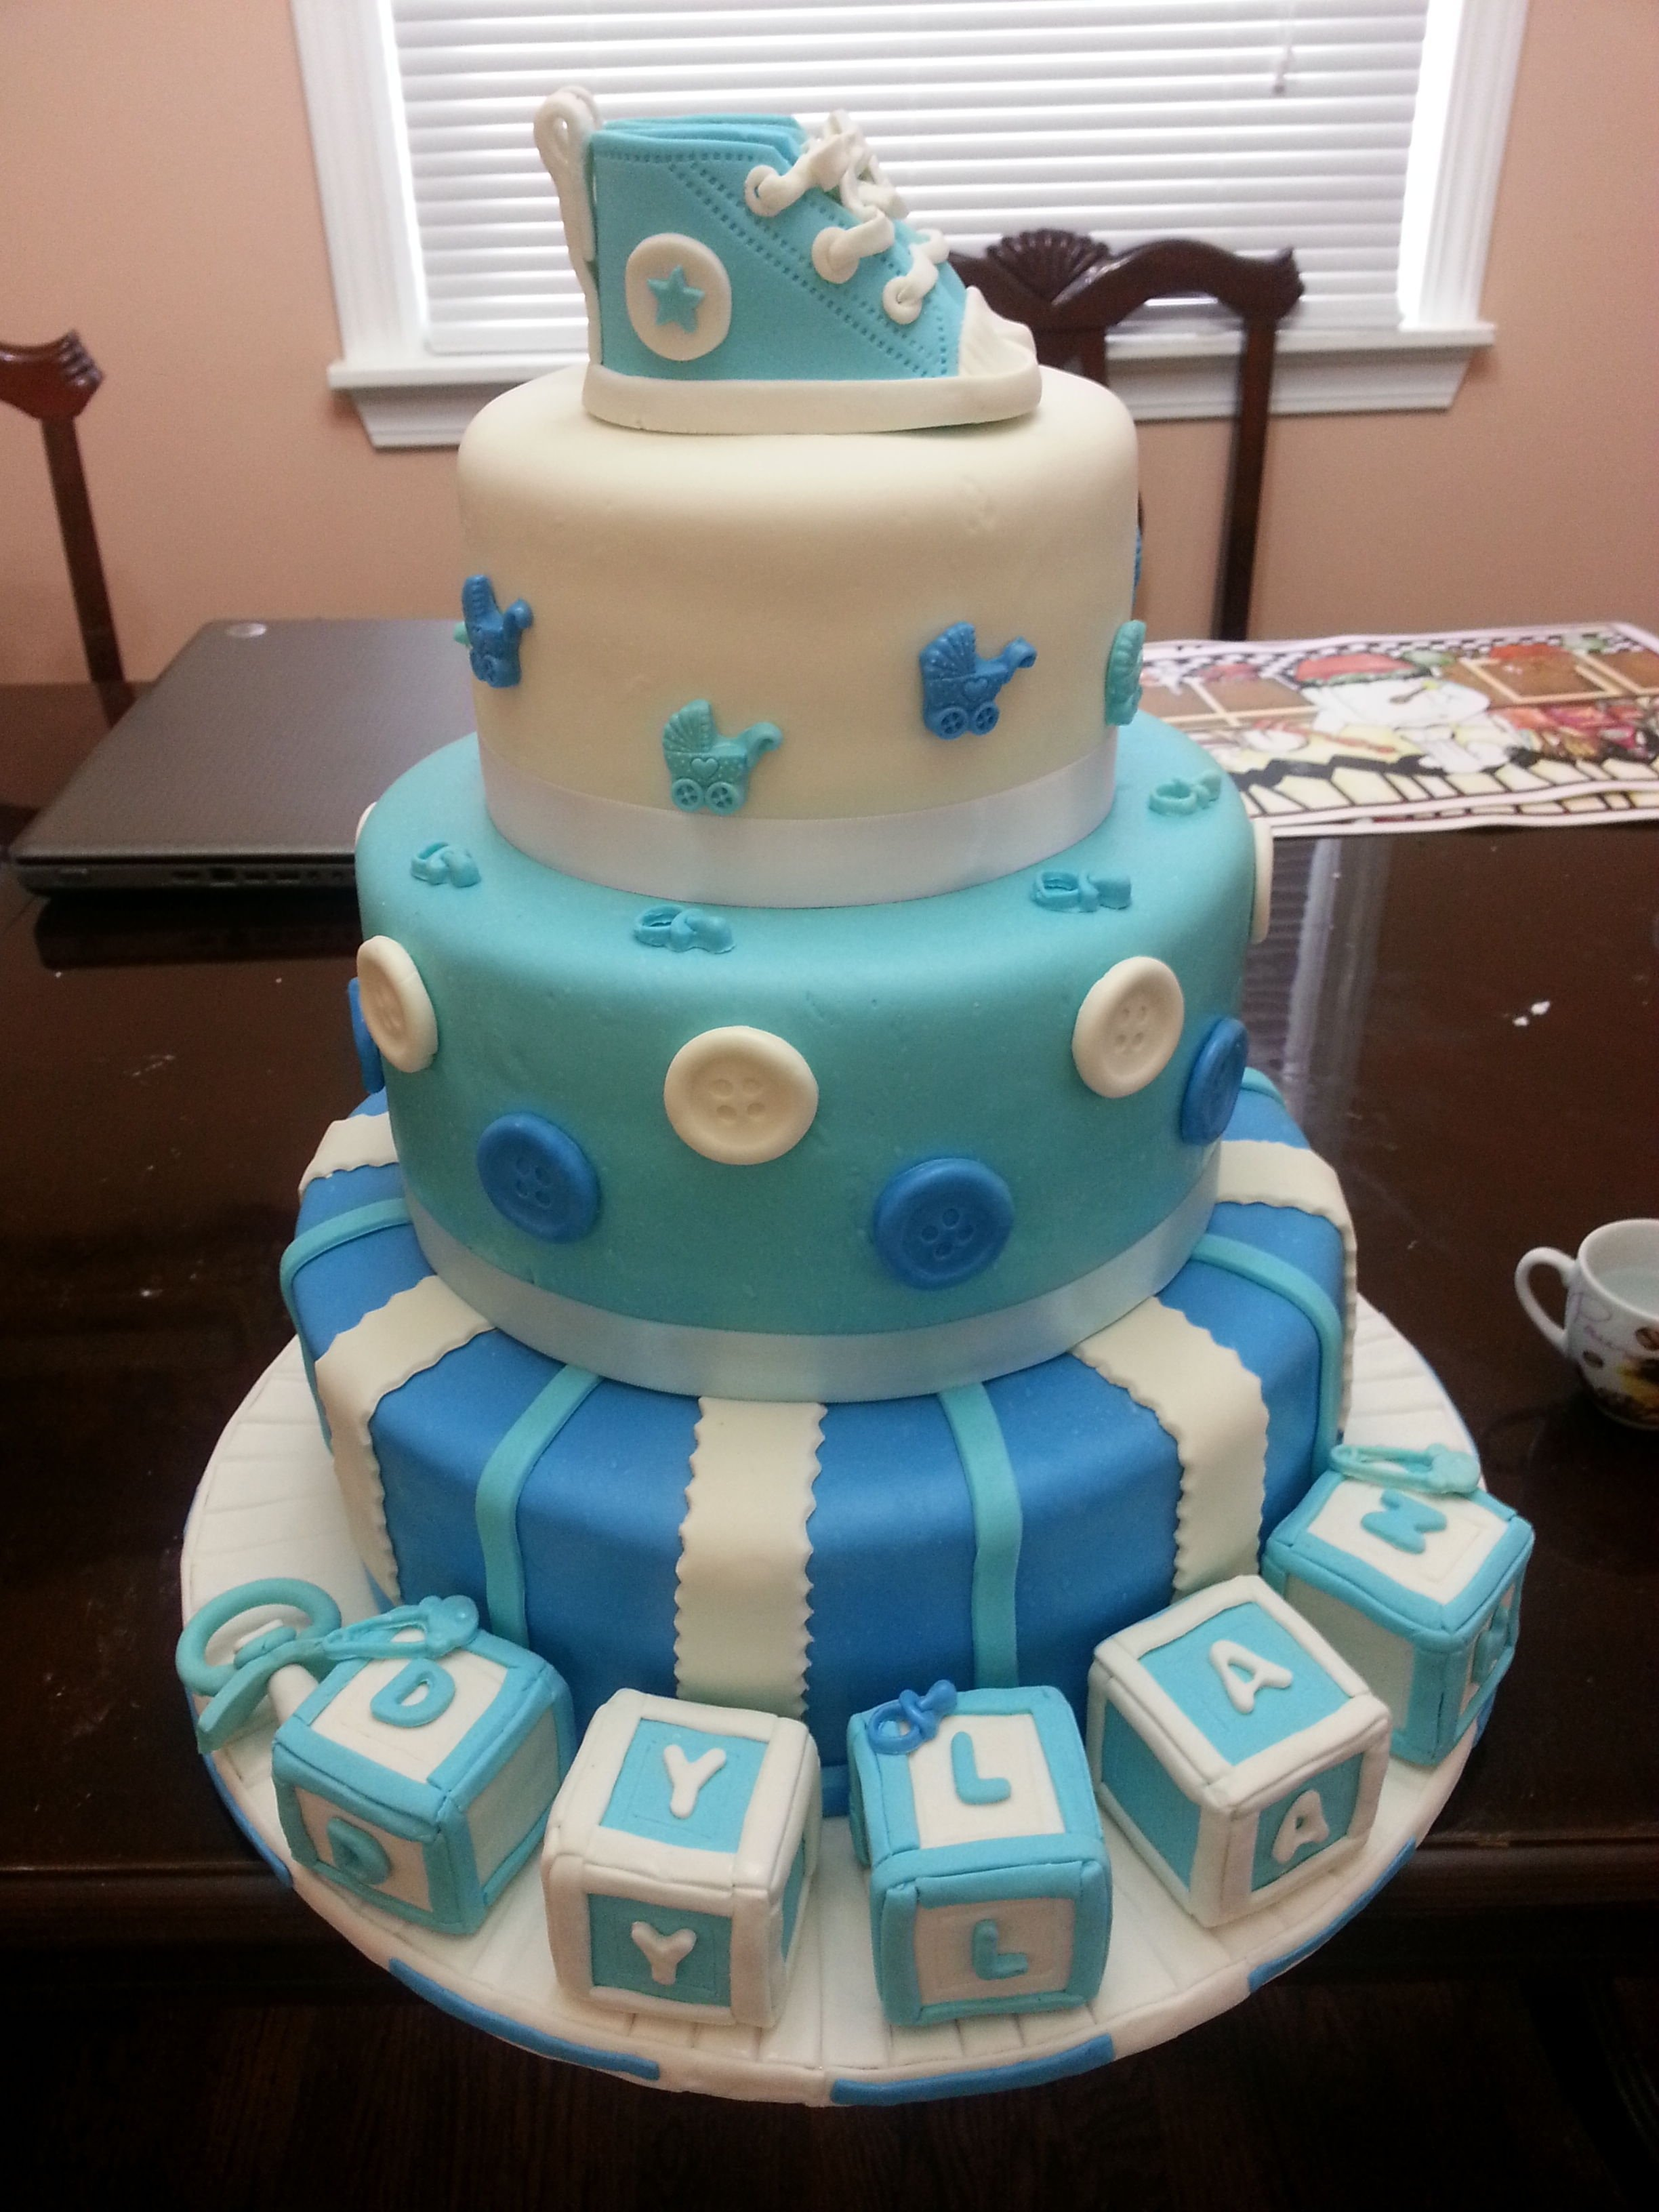 10 Great Baby Shower Cake Ideas For Boy baby shower baby shower cakes boys pinterest babies cake 3 2020